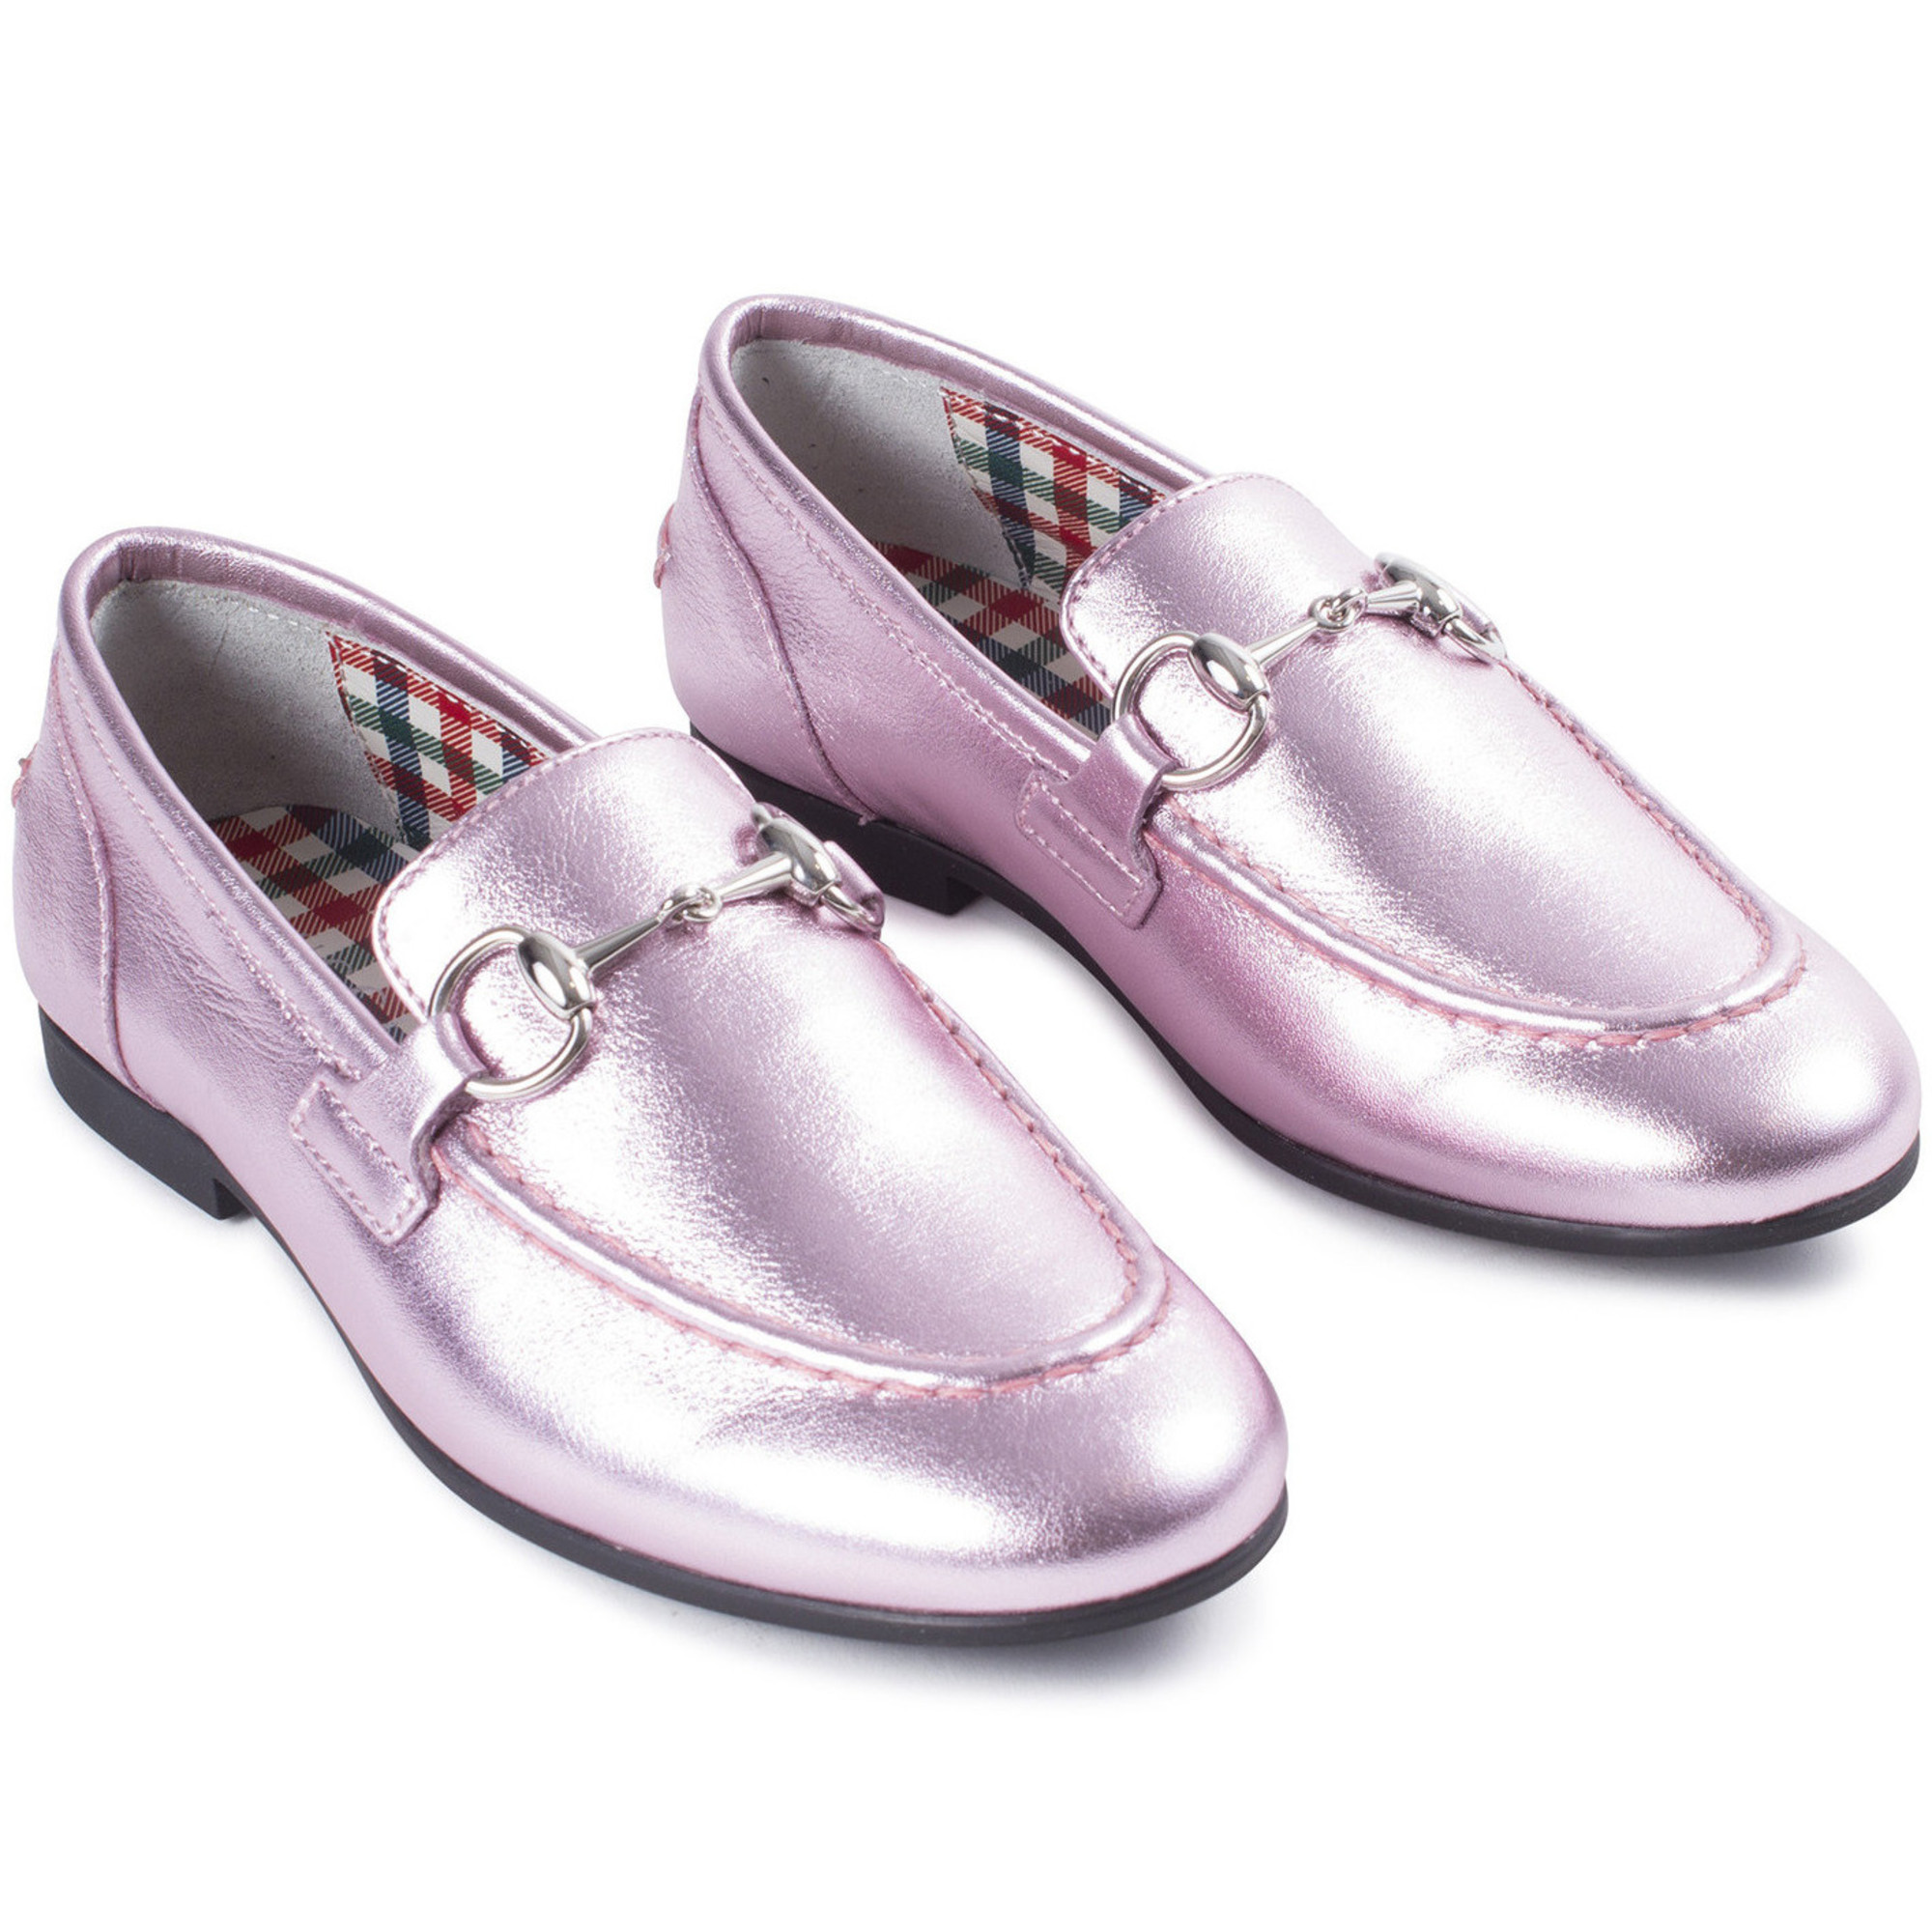 Gucci Girls Snaffle Bit Loafers in Iced